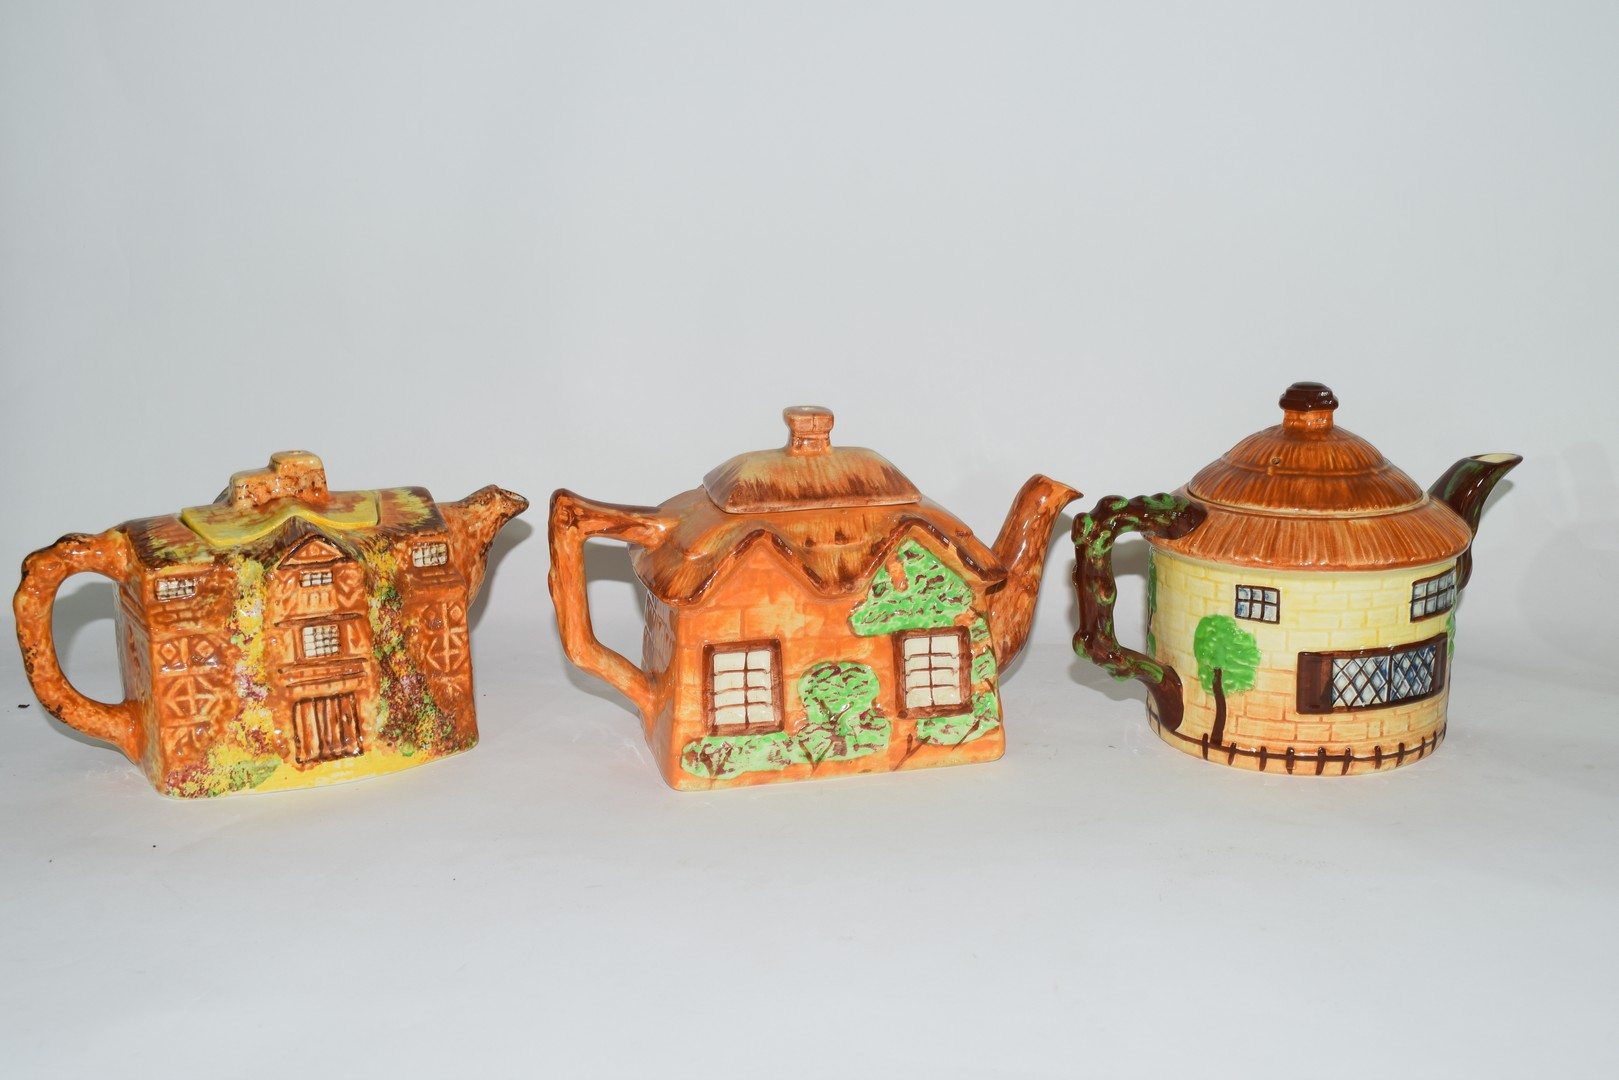 Group of mid-20th century cottage style tea pots - Image 2 of 4